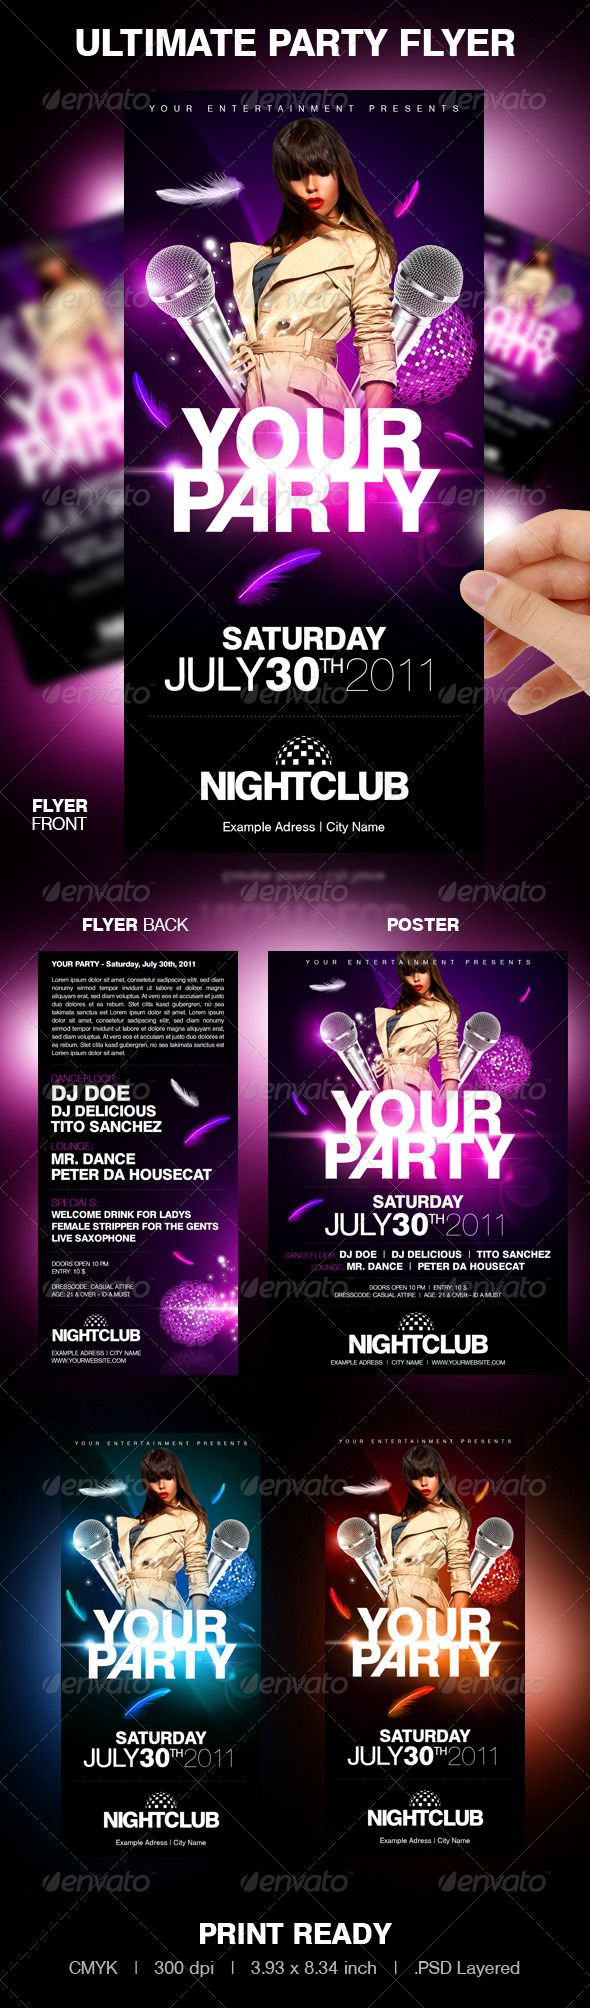 flyer events